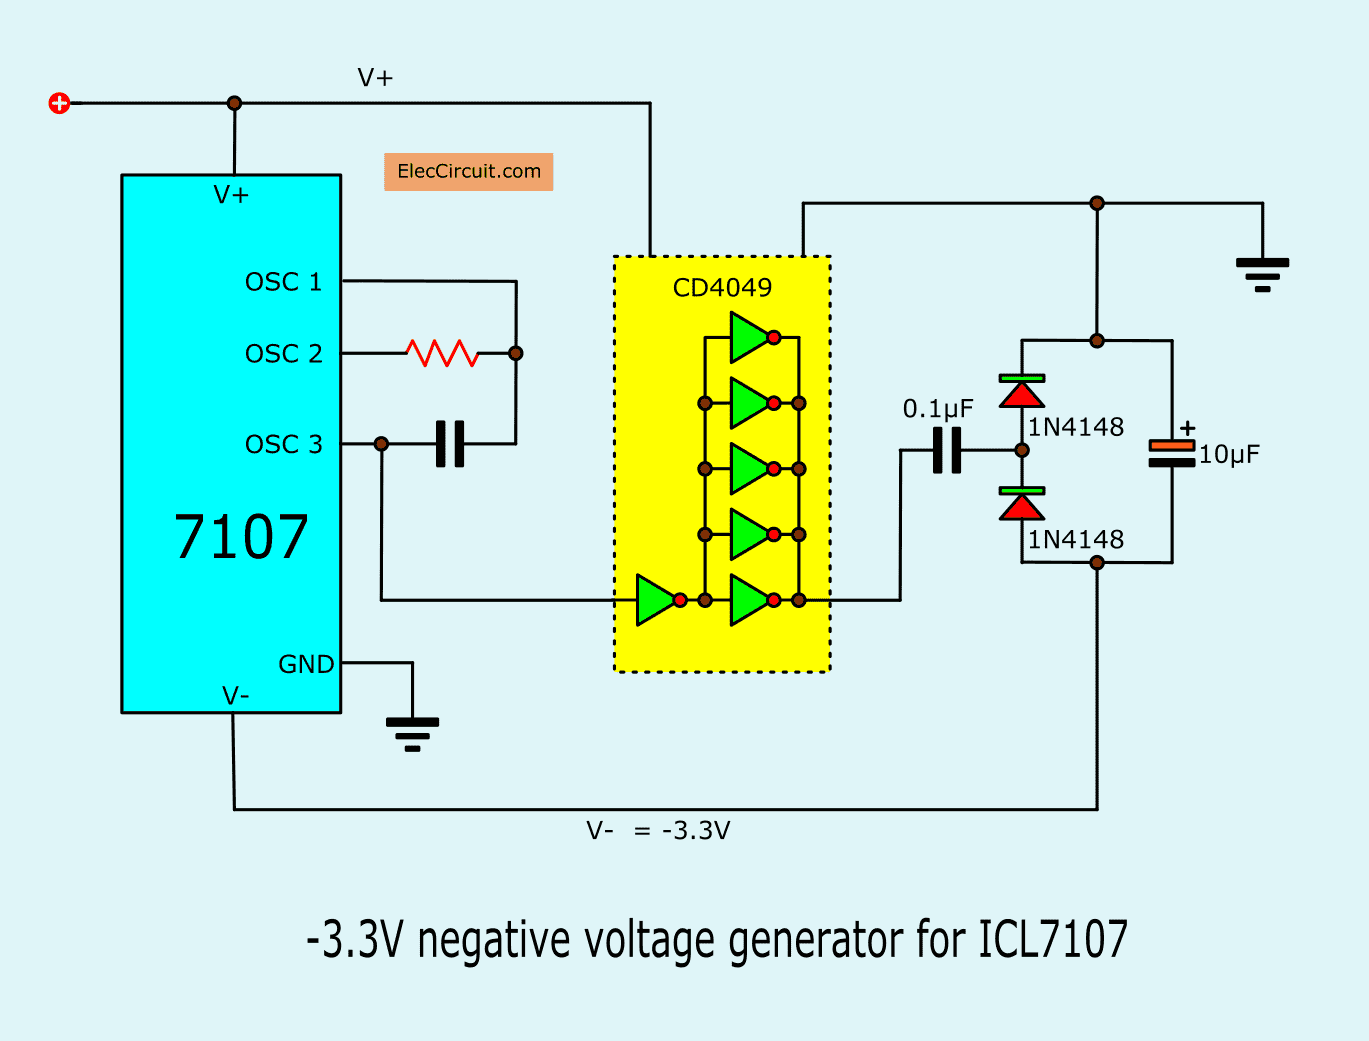 hight resolution of in normal it powers only a single positive voltage then we build a negative voltage generator circuit in figure